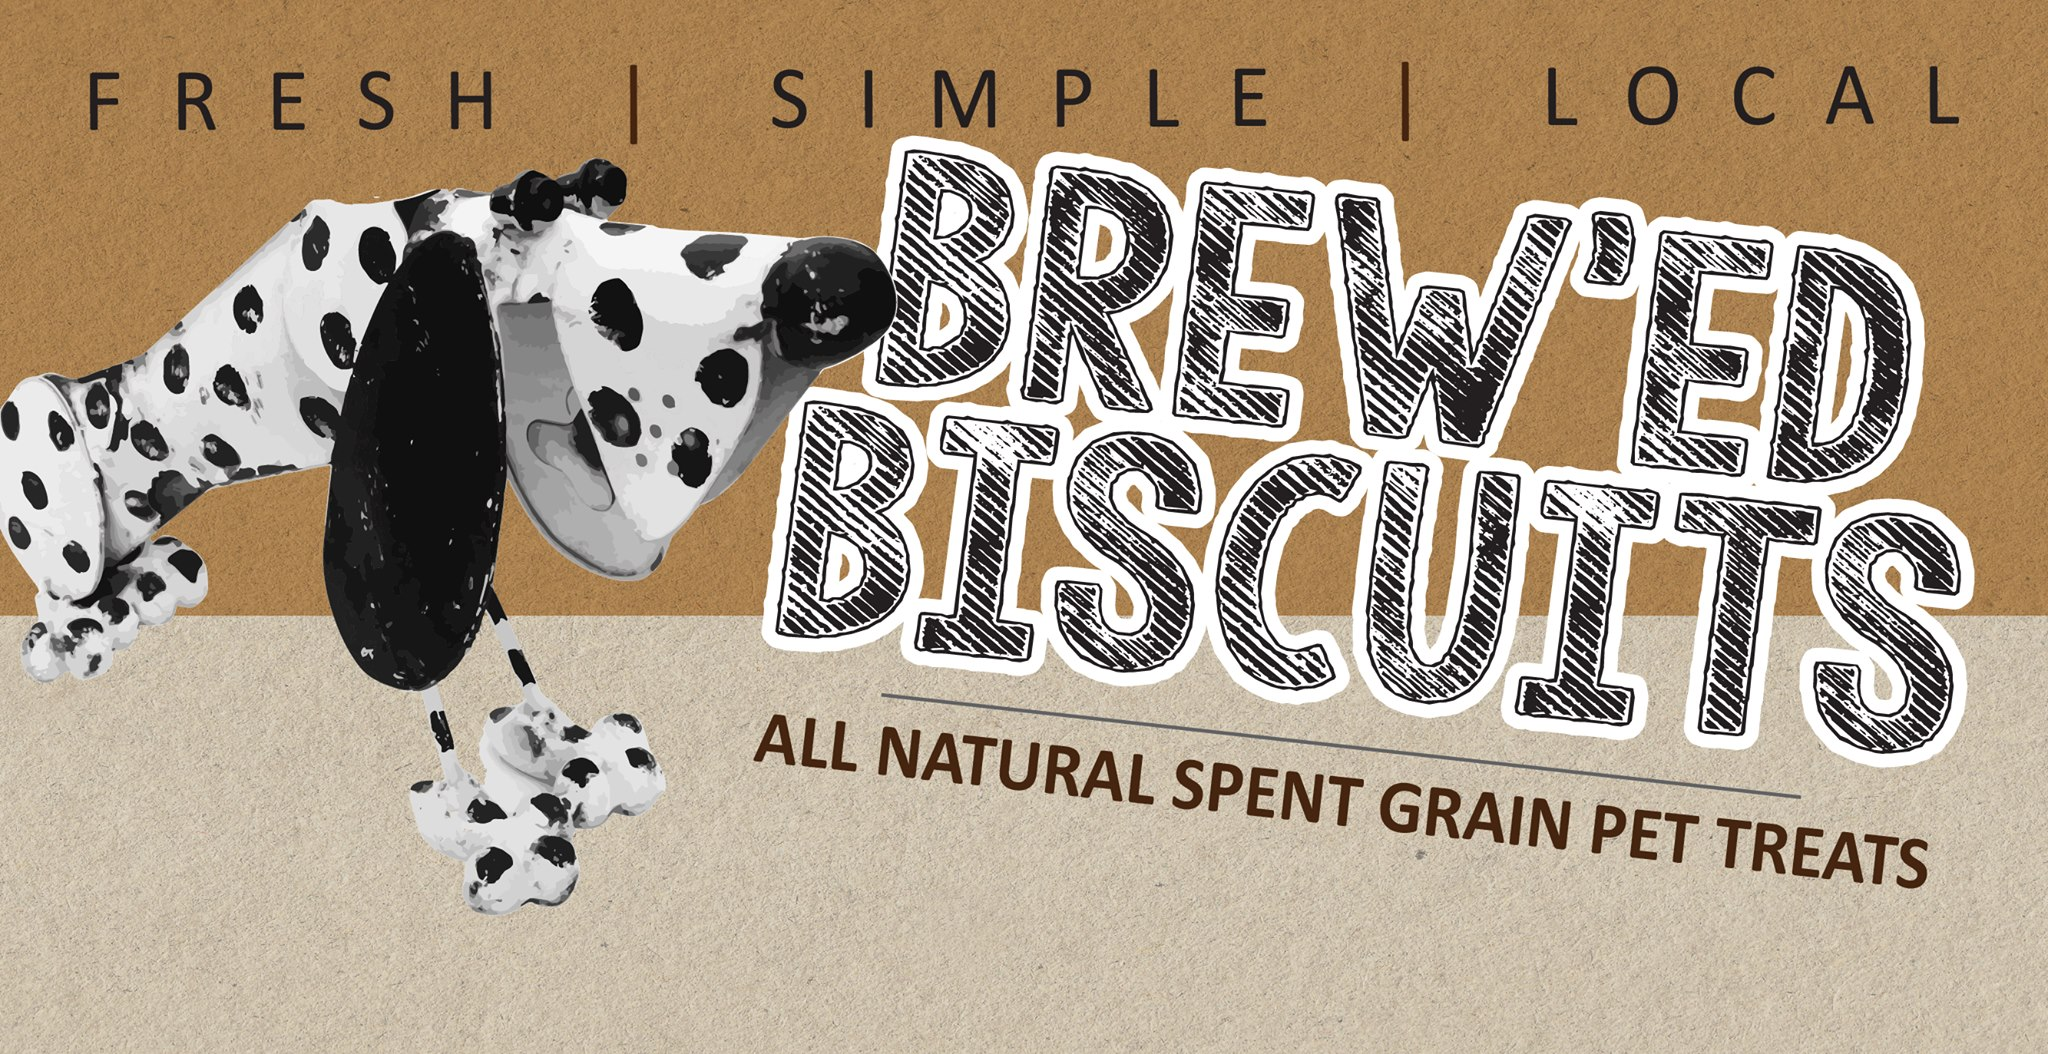 People Tested... Pet Approved! Brew'd Biscuits are an All Natural Pet Treat made with Hearty Recycled SPENT GRAINS & Local Products.     https://www.twospentgrains.ca